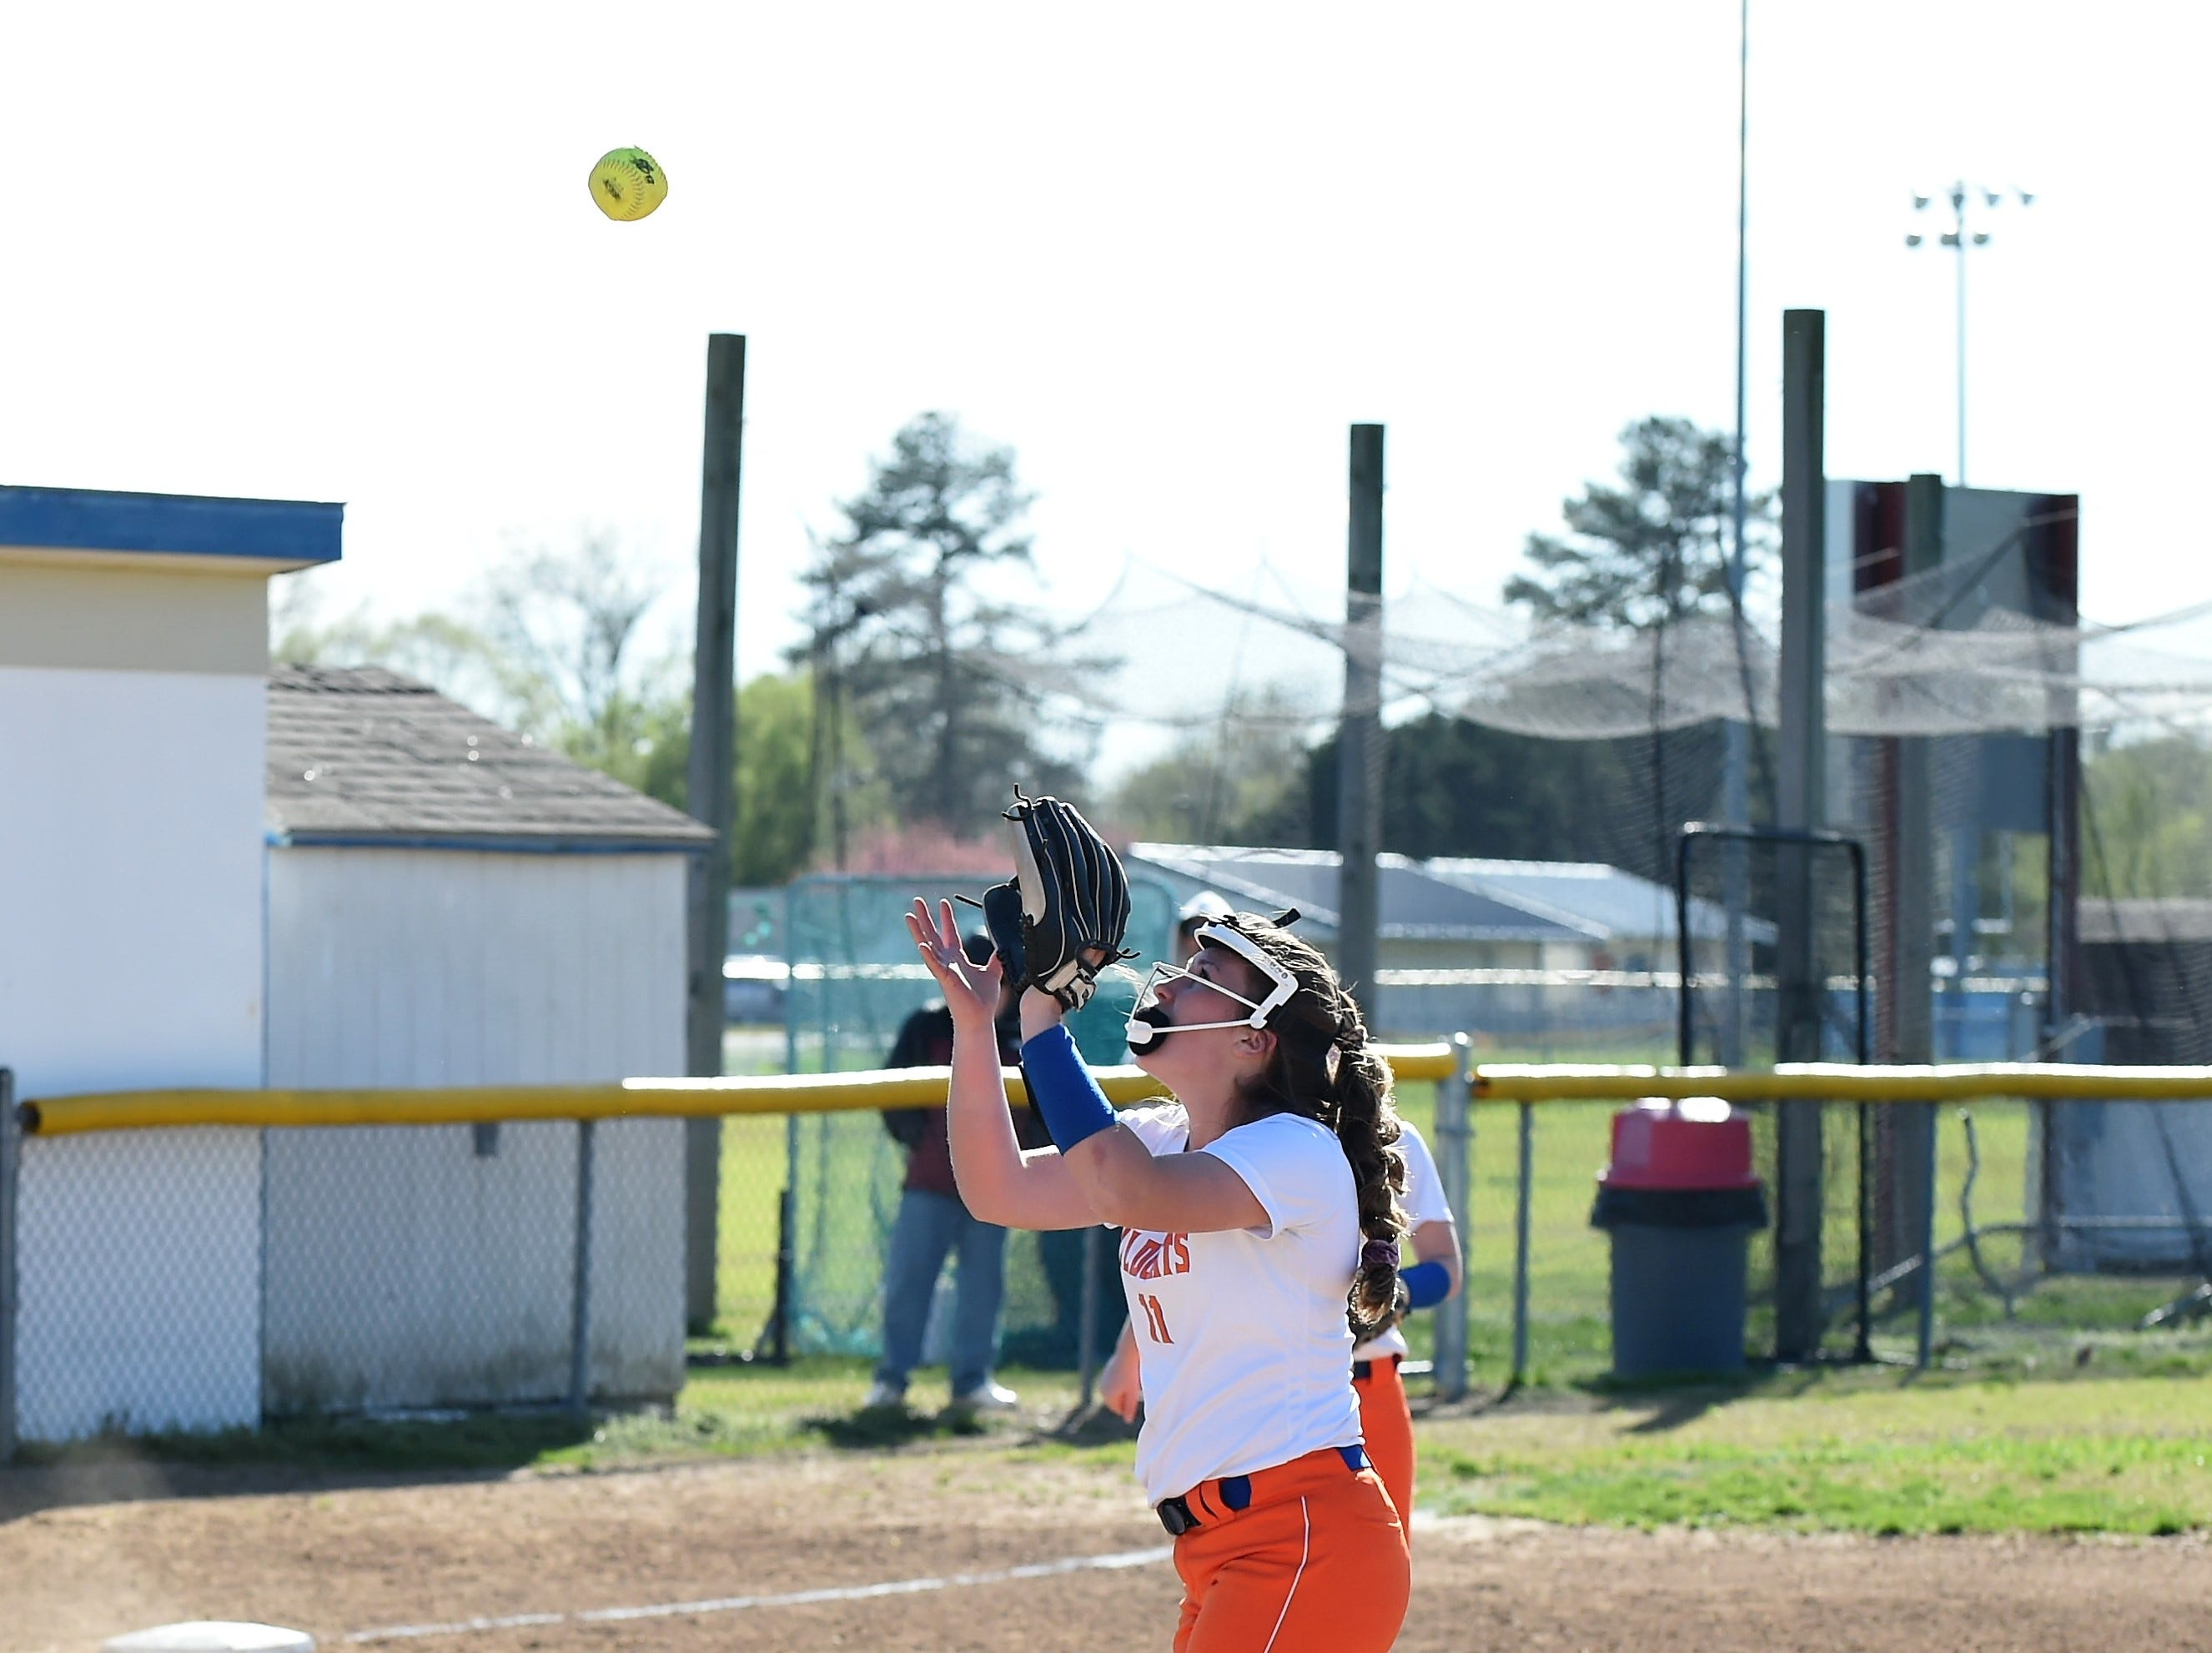 Delmar pitcher Ashlyn Tapman goes to make a catch on Monday, April 15, 2019. The Wildcats defeated Padua Academy, 6-2.